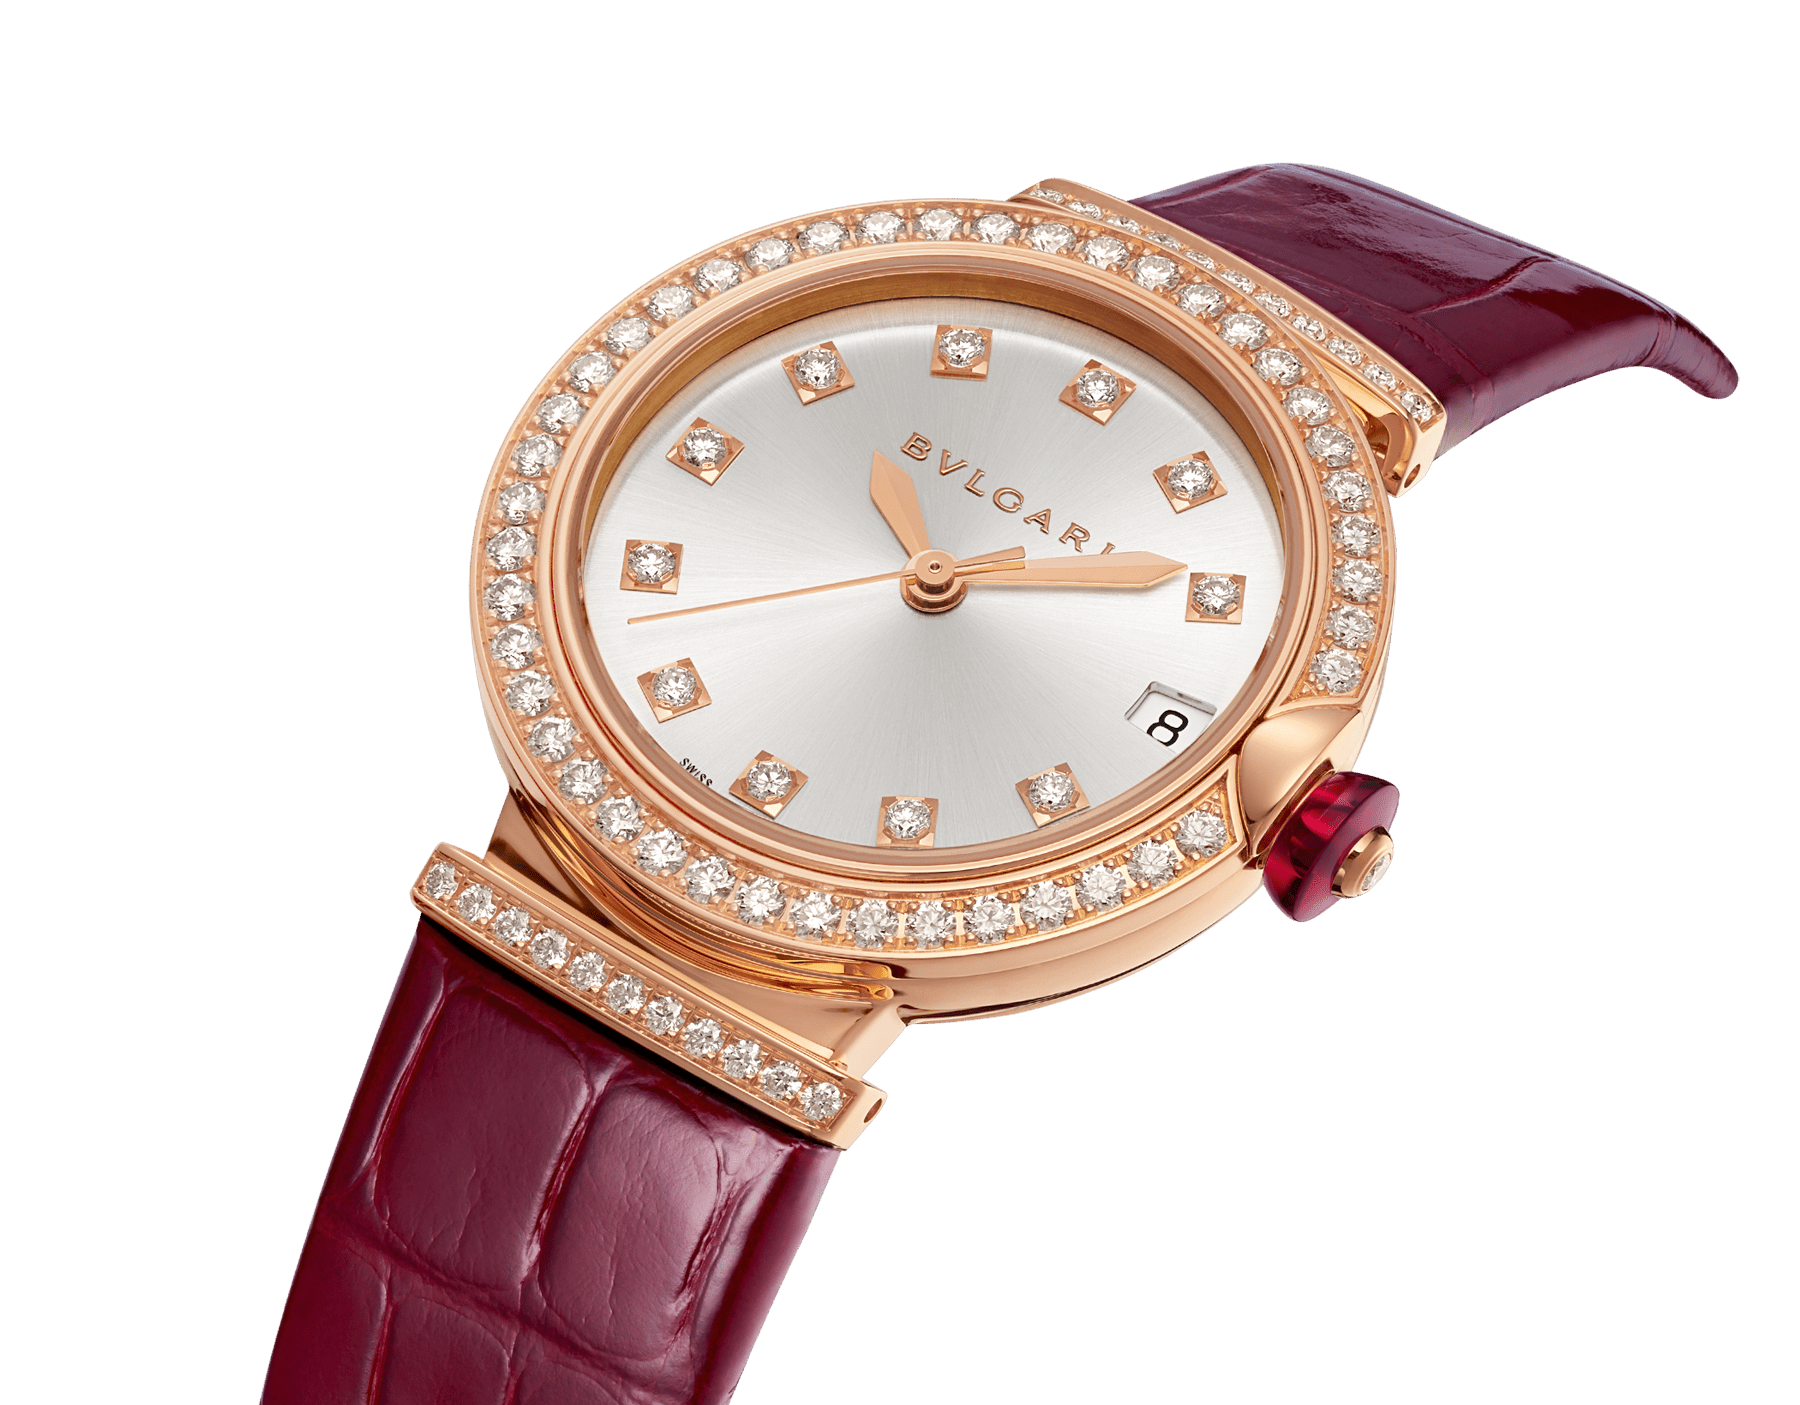 LVCEA watch with 18 kt rose gold and brilliant-cut diamond case, silver satiné soleil dial, diamond indexes and bordeaux alligator bracelet. 102329 image 2